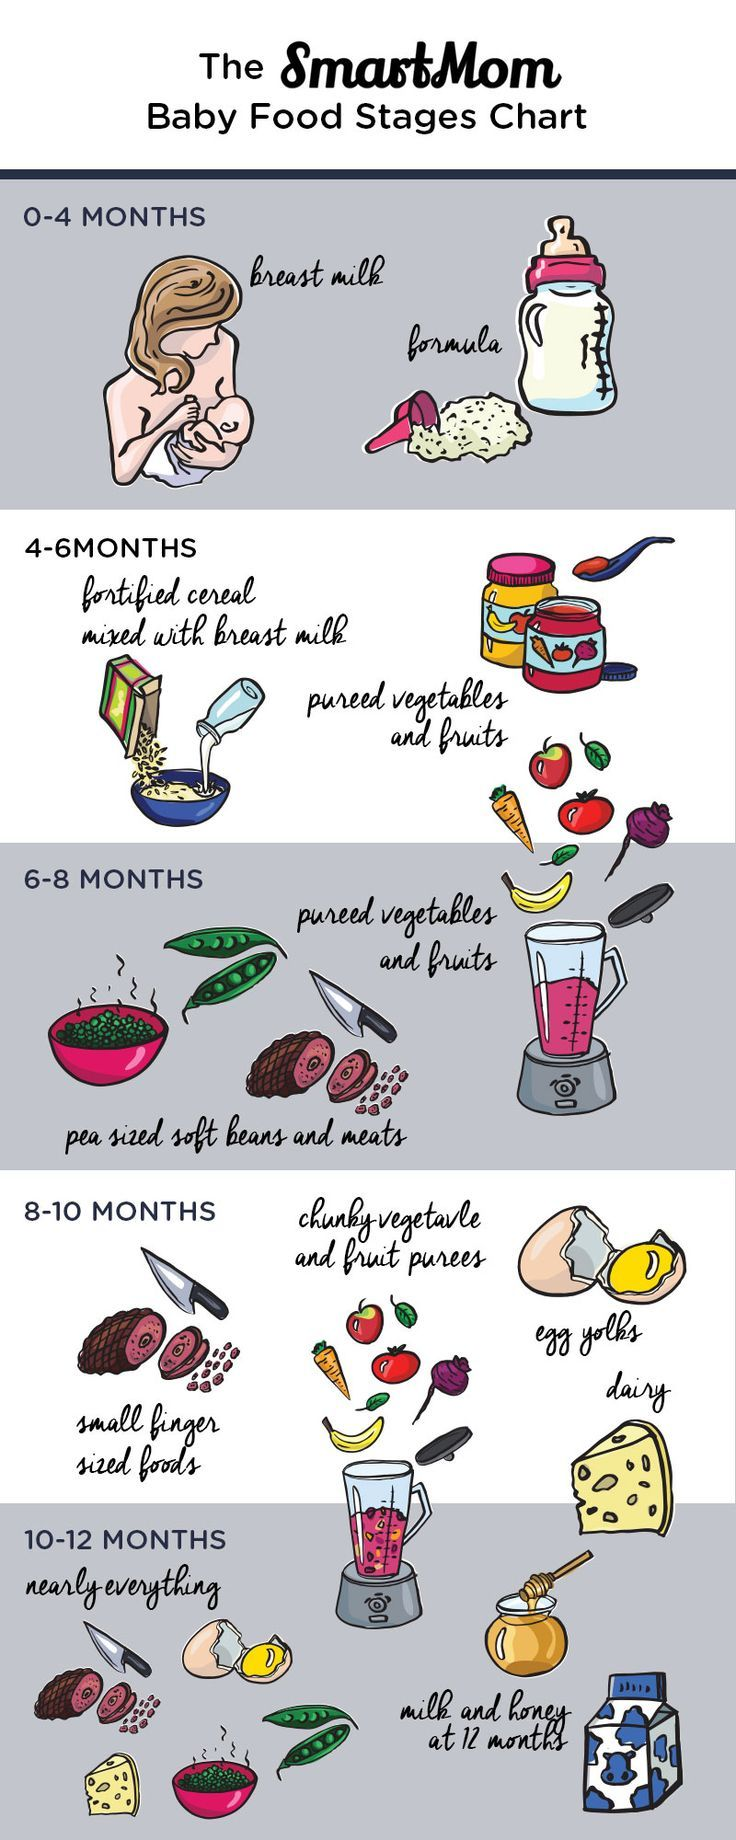 There's thousands of baby food and stages information out there, so we created a SmartMom Baby Food Stages Chart to make things easy for you.